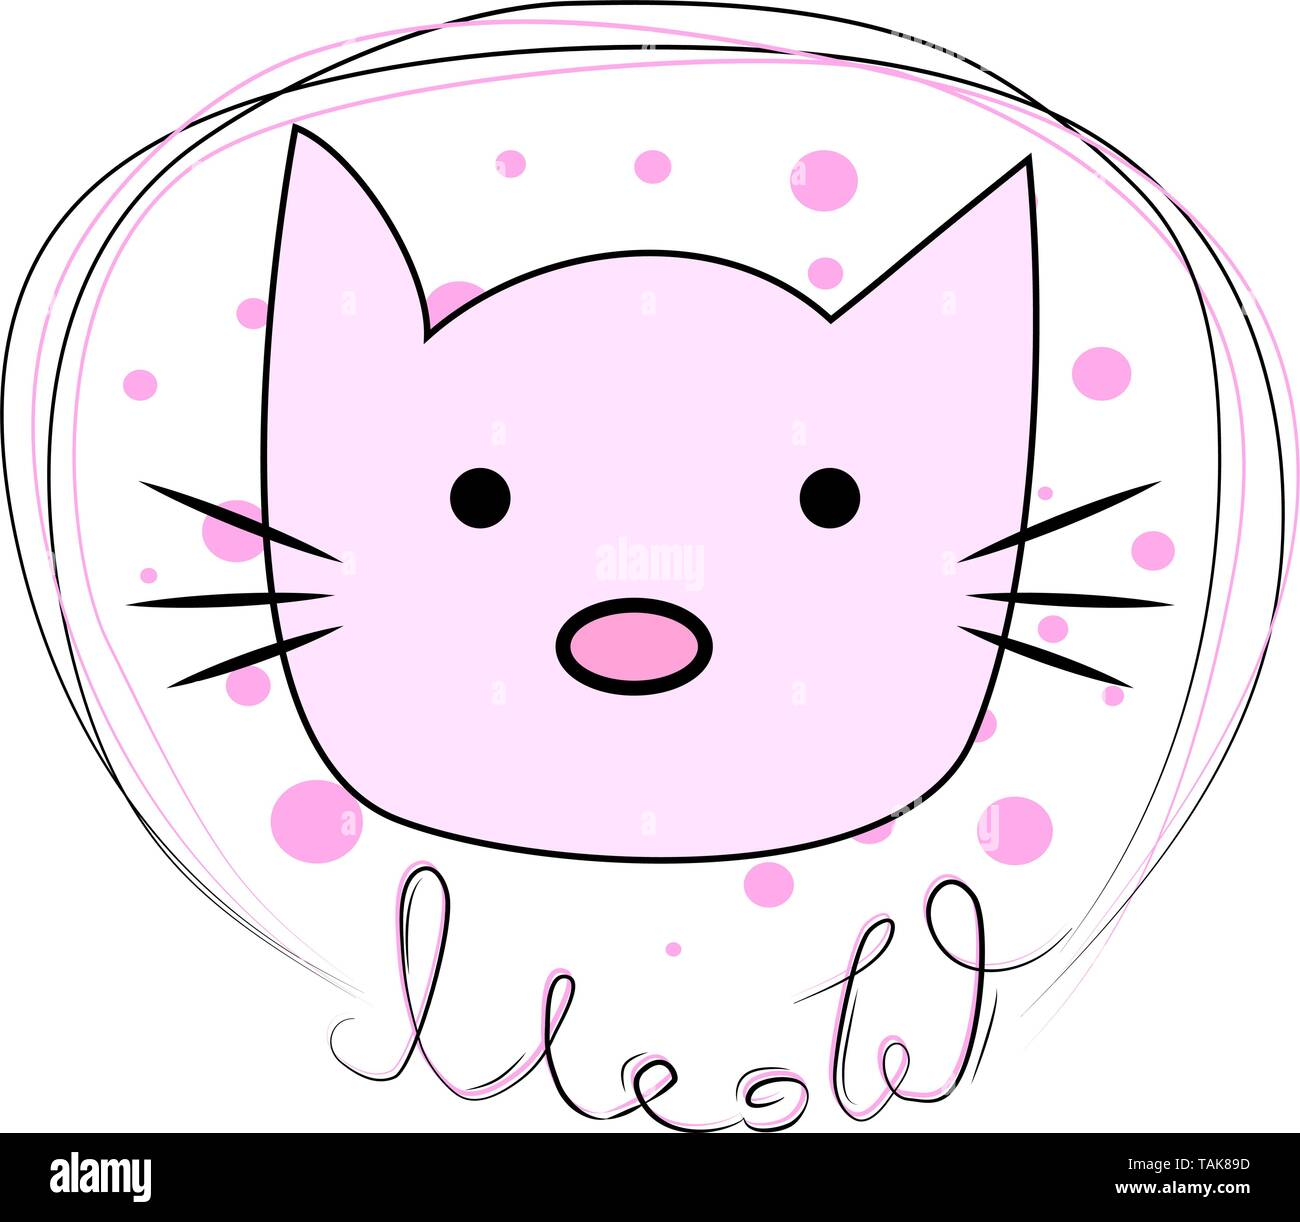 Hand drawn illustration of a funny cat face in a chain, with text Meow. Design concept for children. - Stock Image